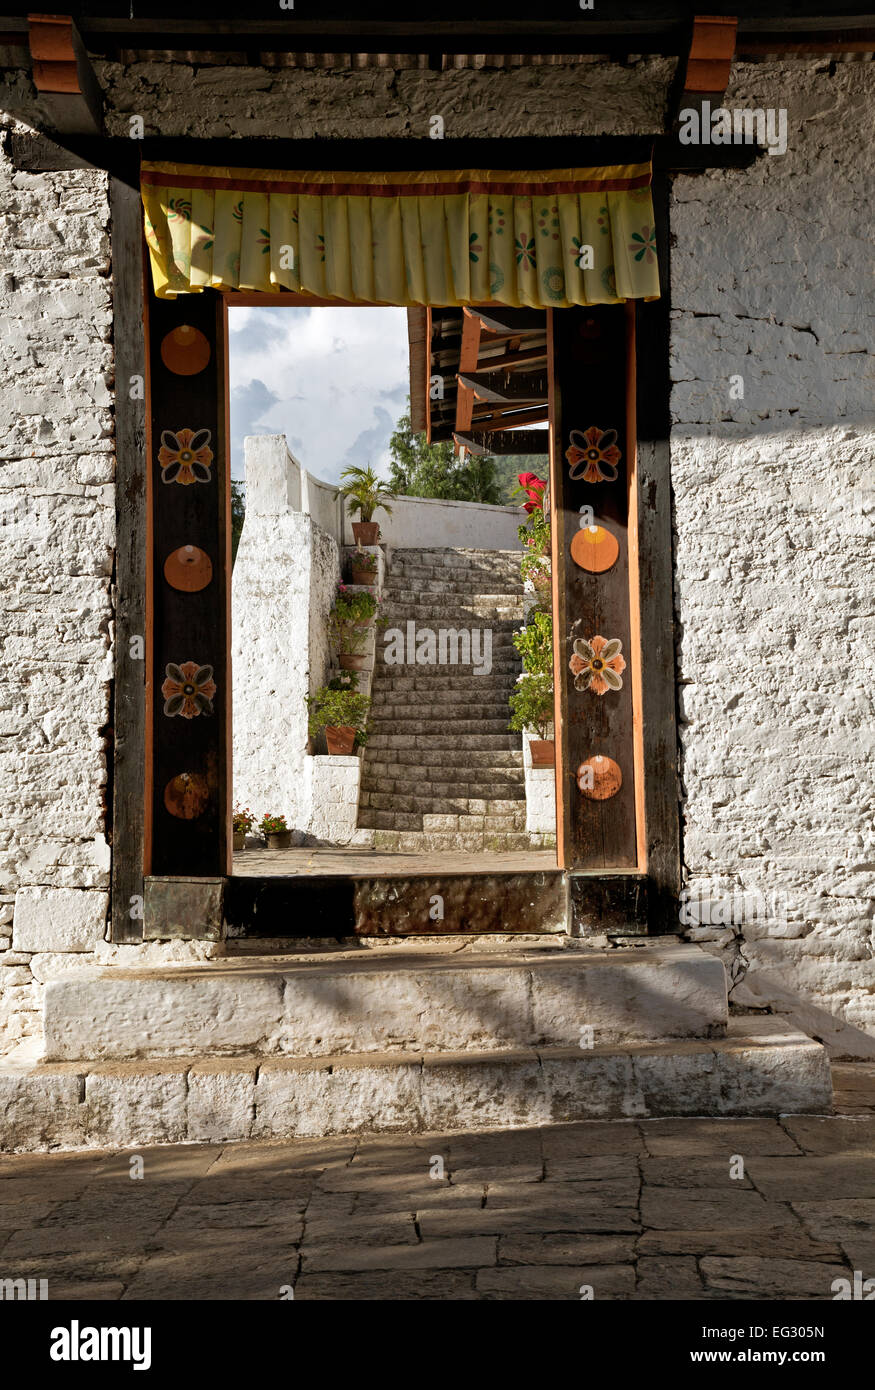 BU00118-00...BHUTAN - Doorway at the Punakha Dzong (government offices and monastery). - Stock Image